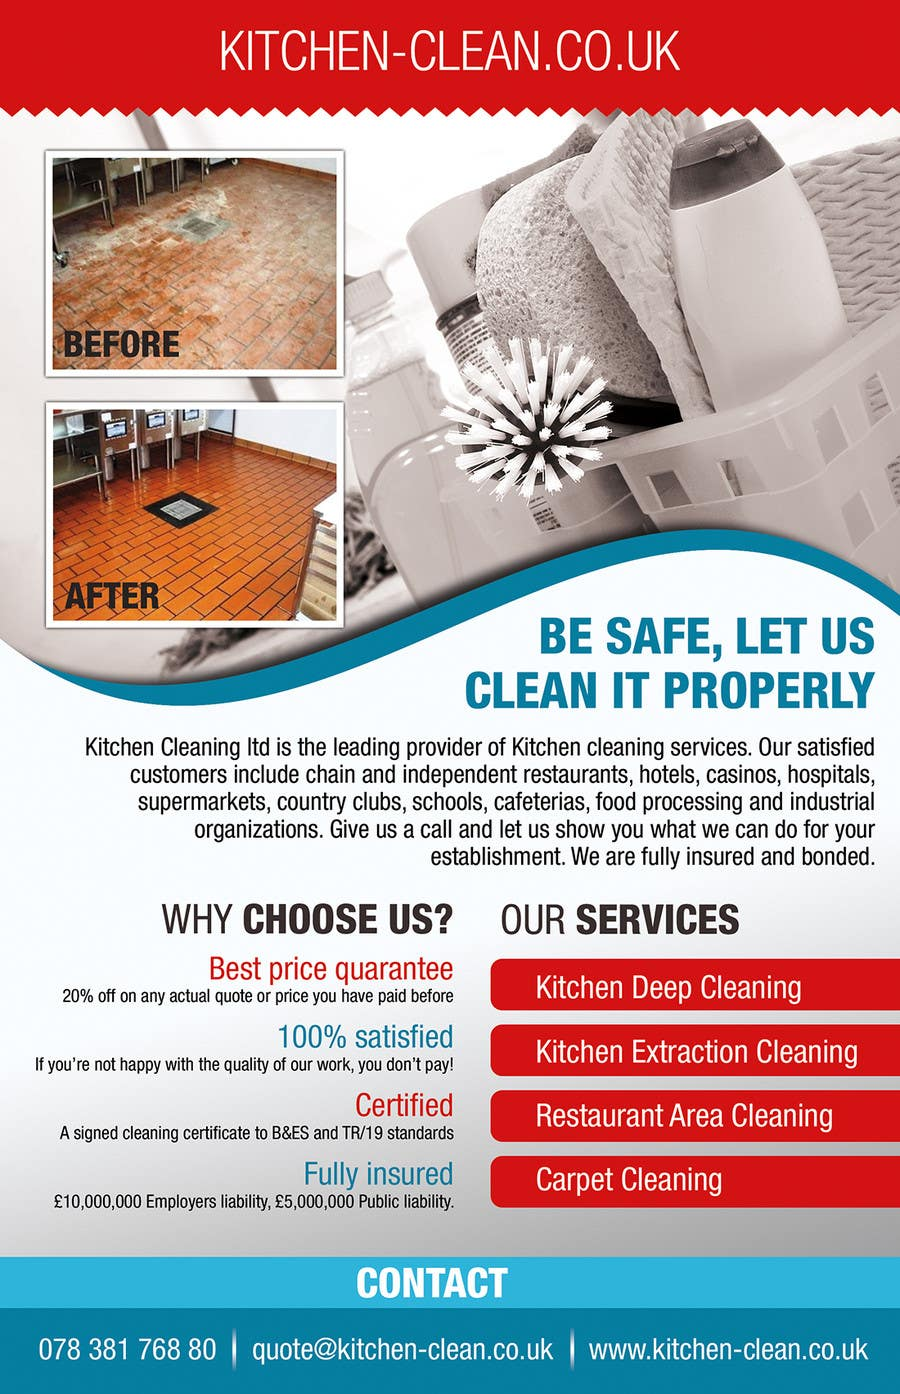 design a flyer for kitchen cleaning company lancer 11 for design a flyer for kitchen cleaning company by izabela1